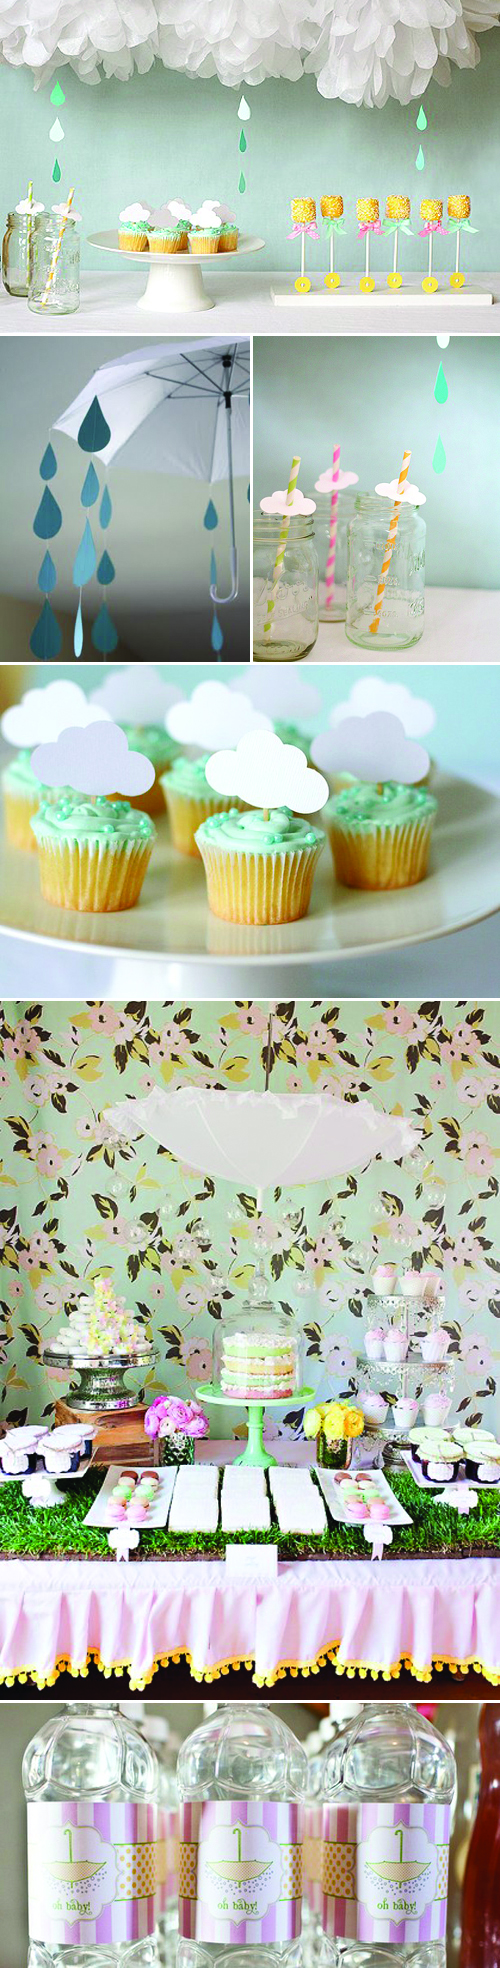 Umbrella Baby Shower Inspiration and Ideas